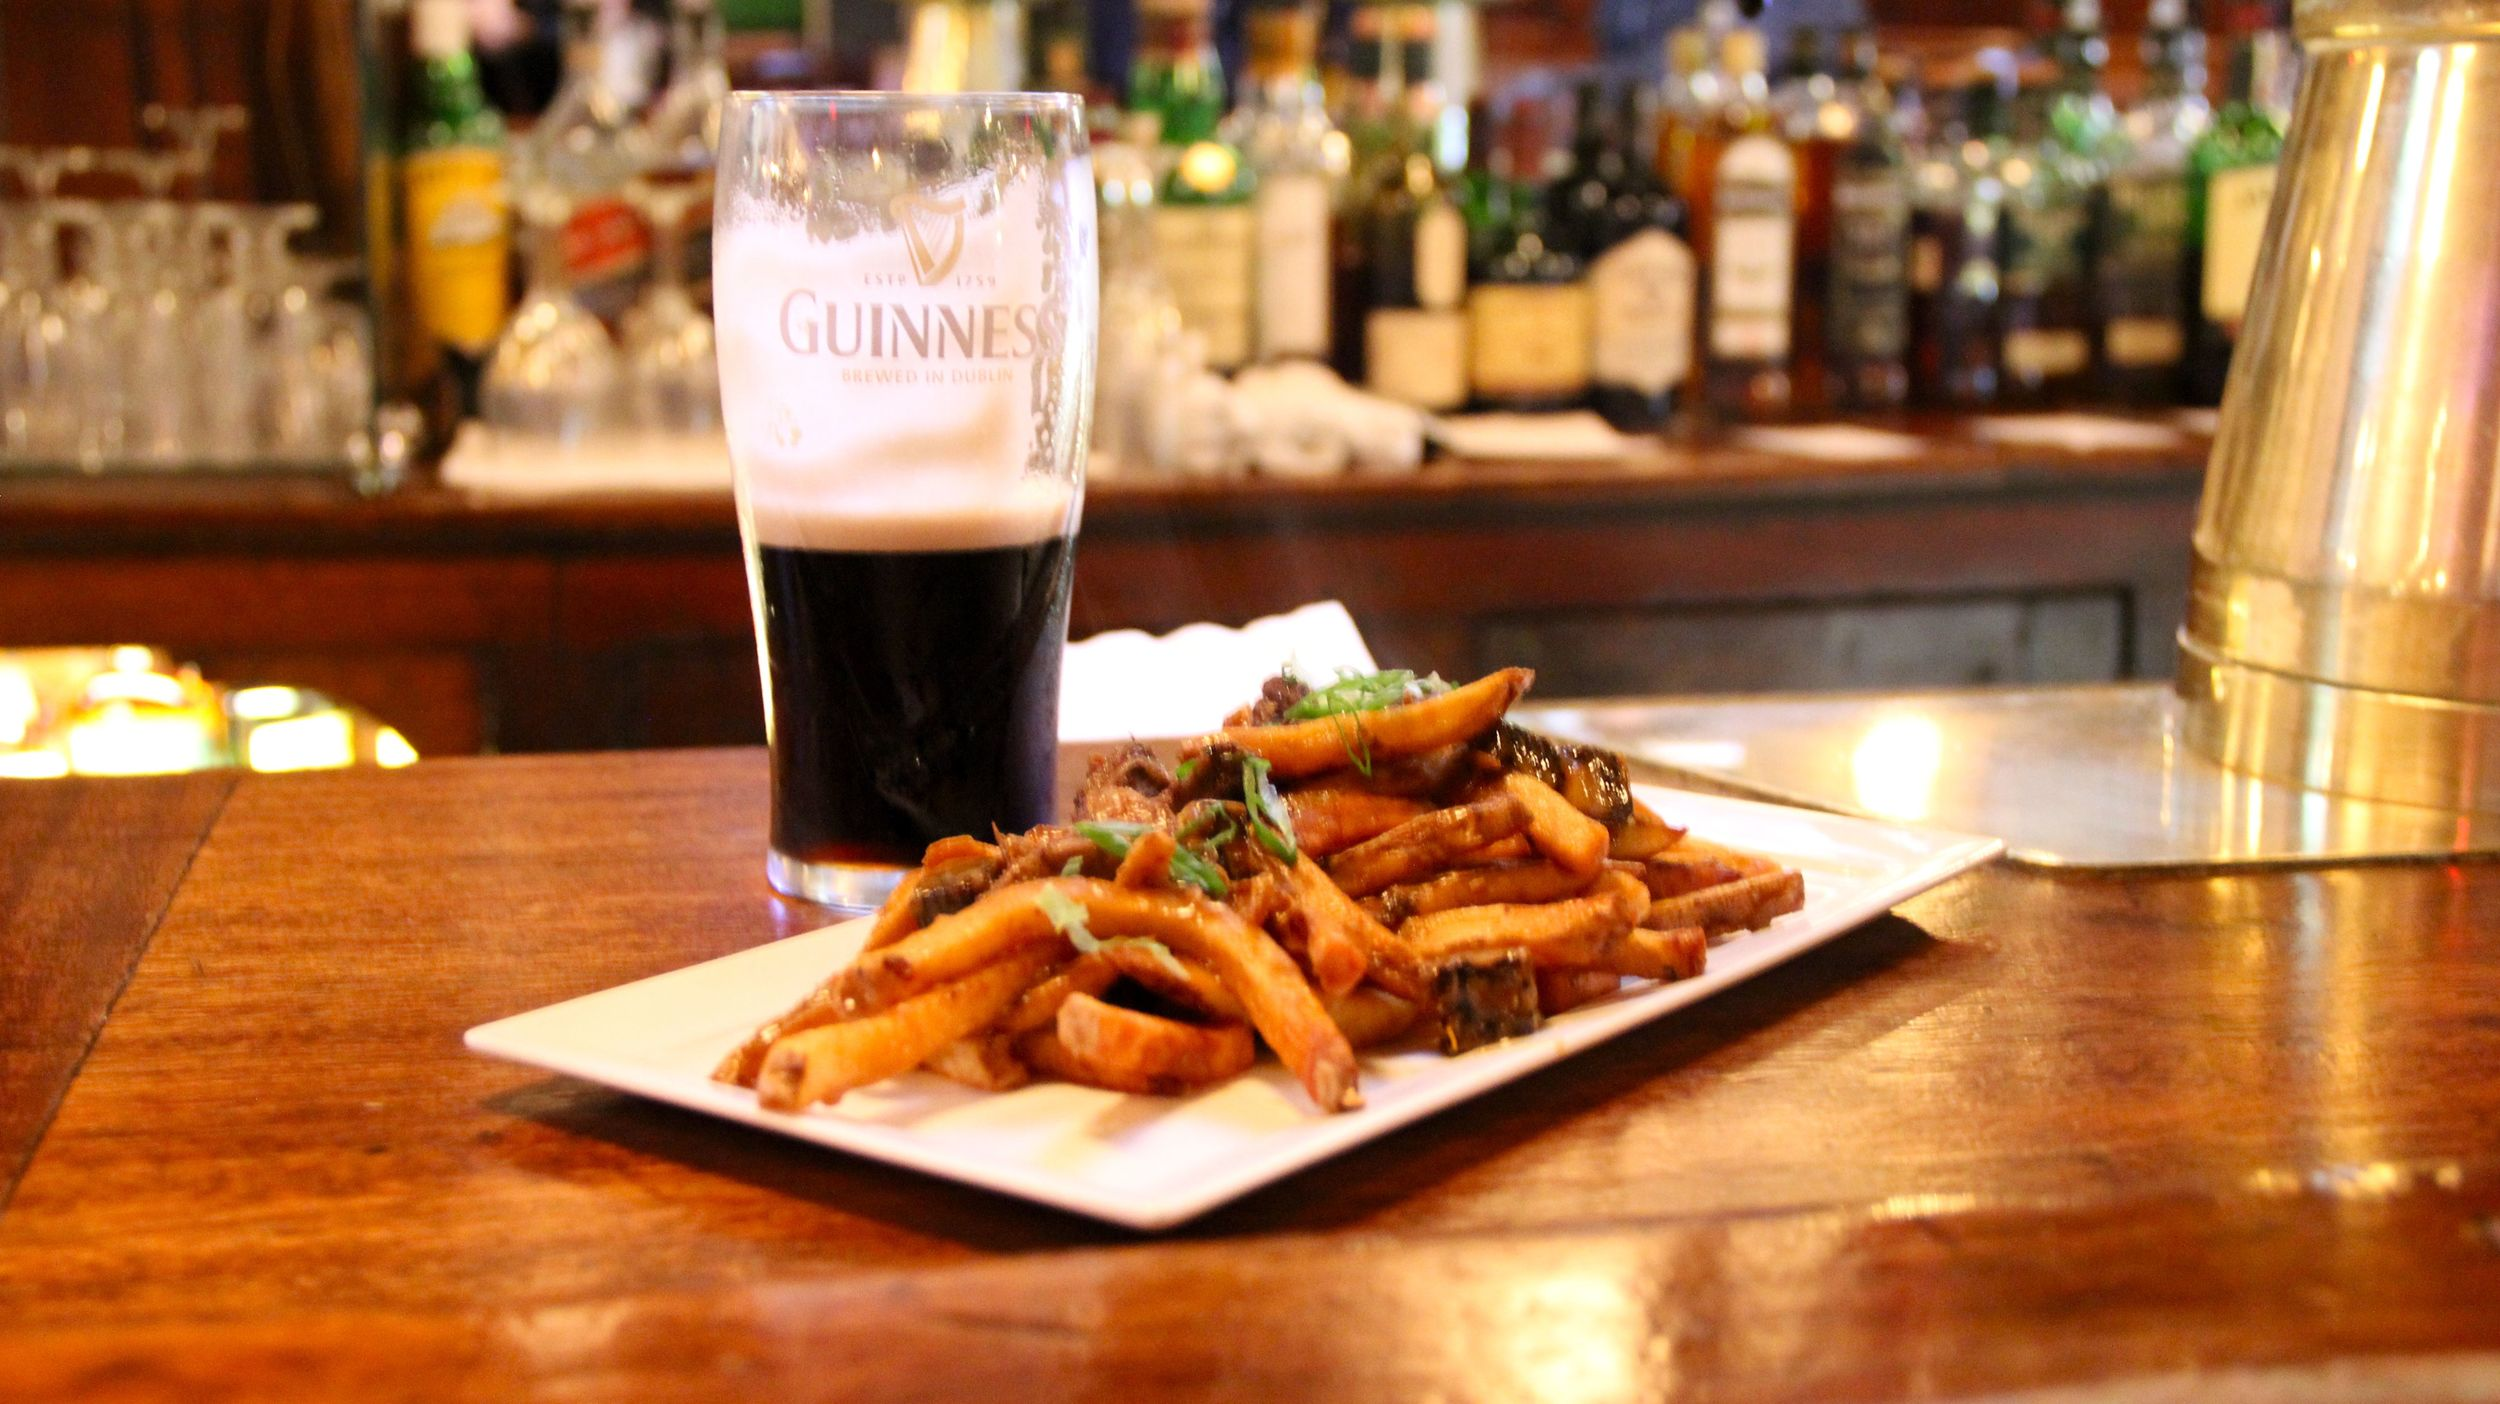 guiness_poutine.jpg